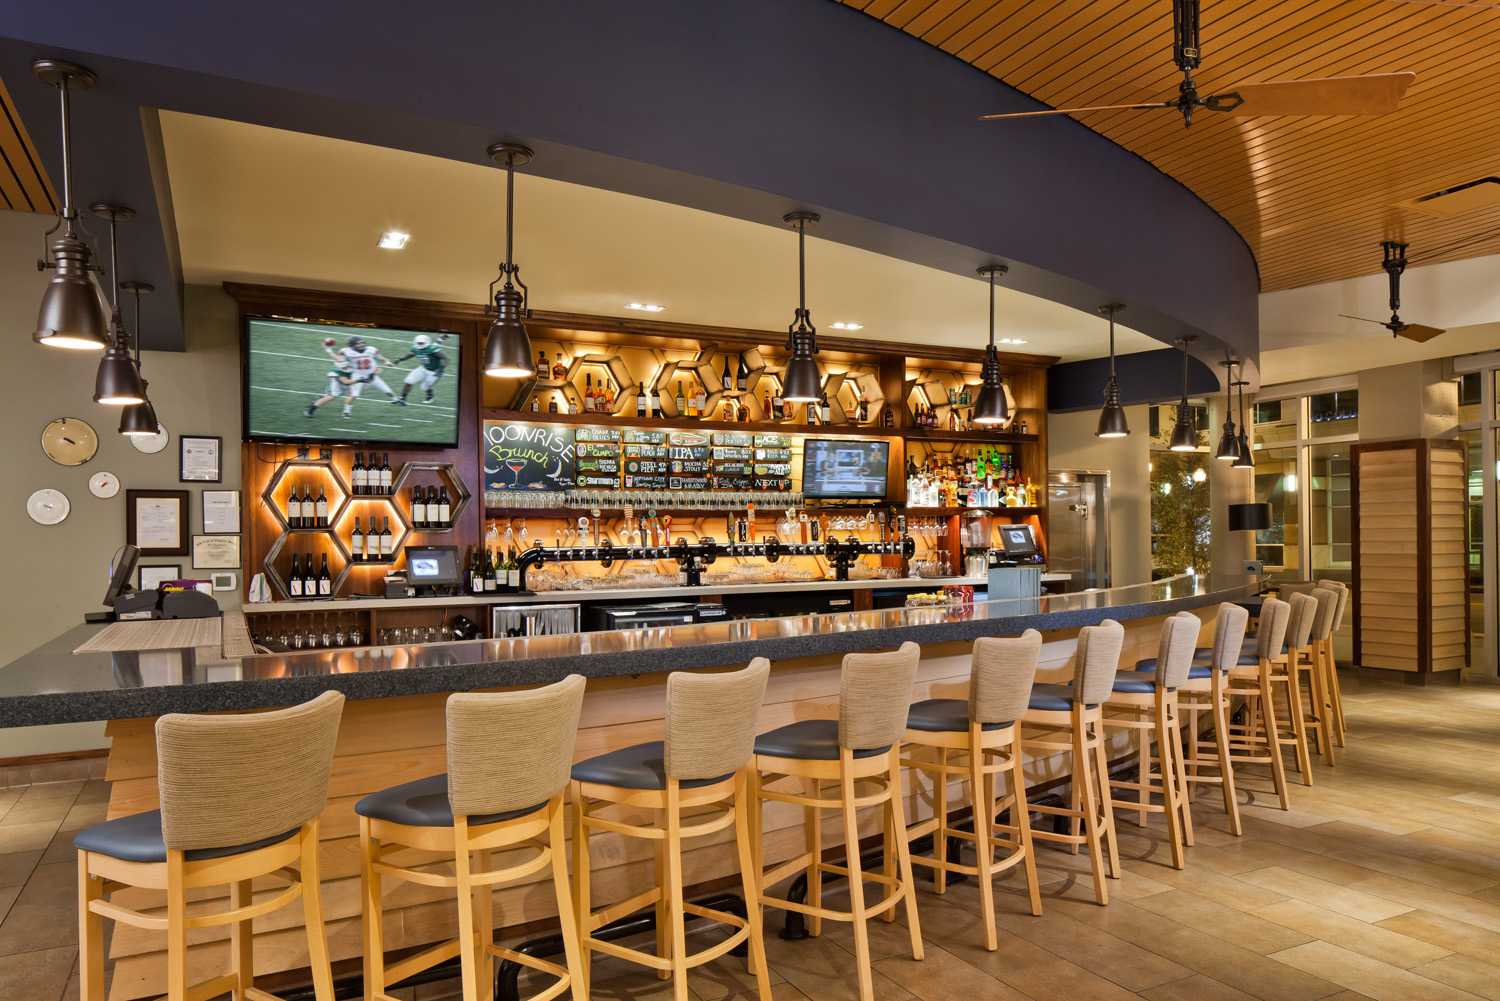 Virginia Beach Bar - Tupelo Honey Cafe